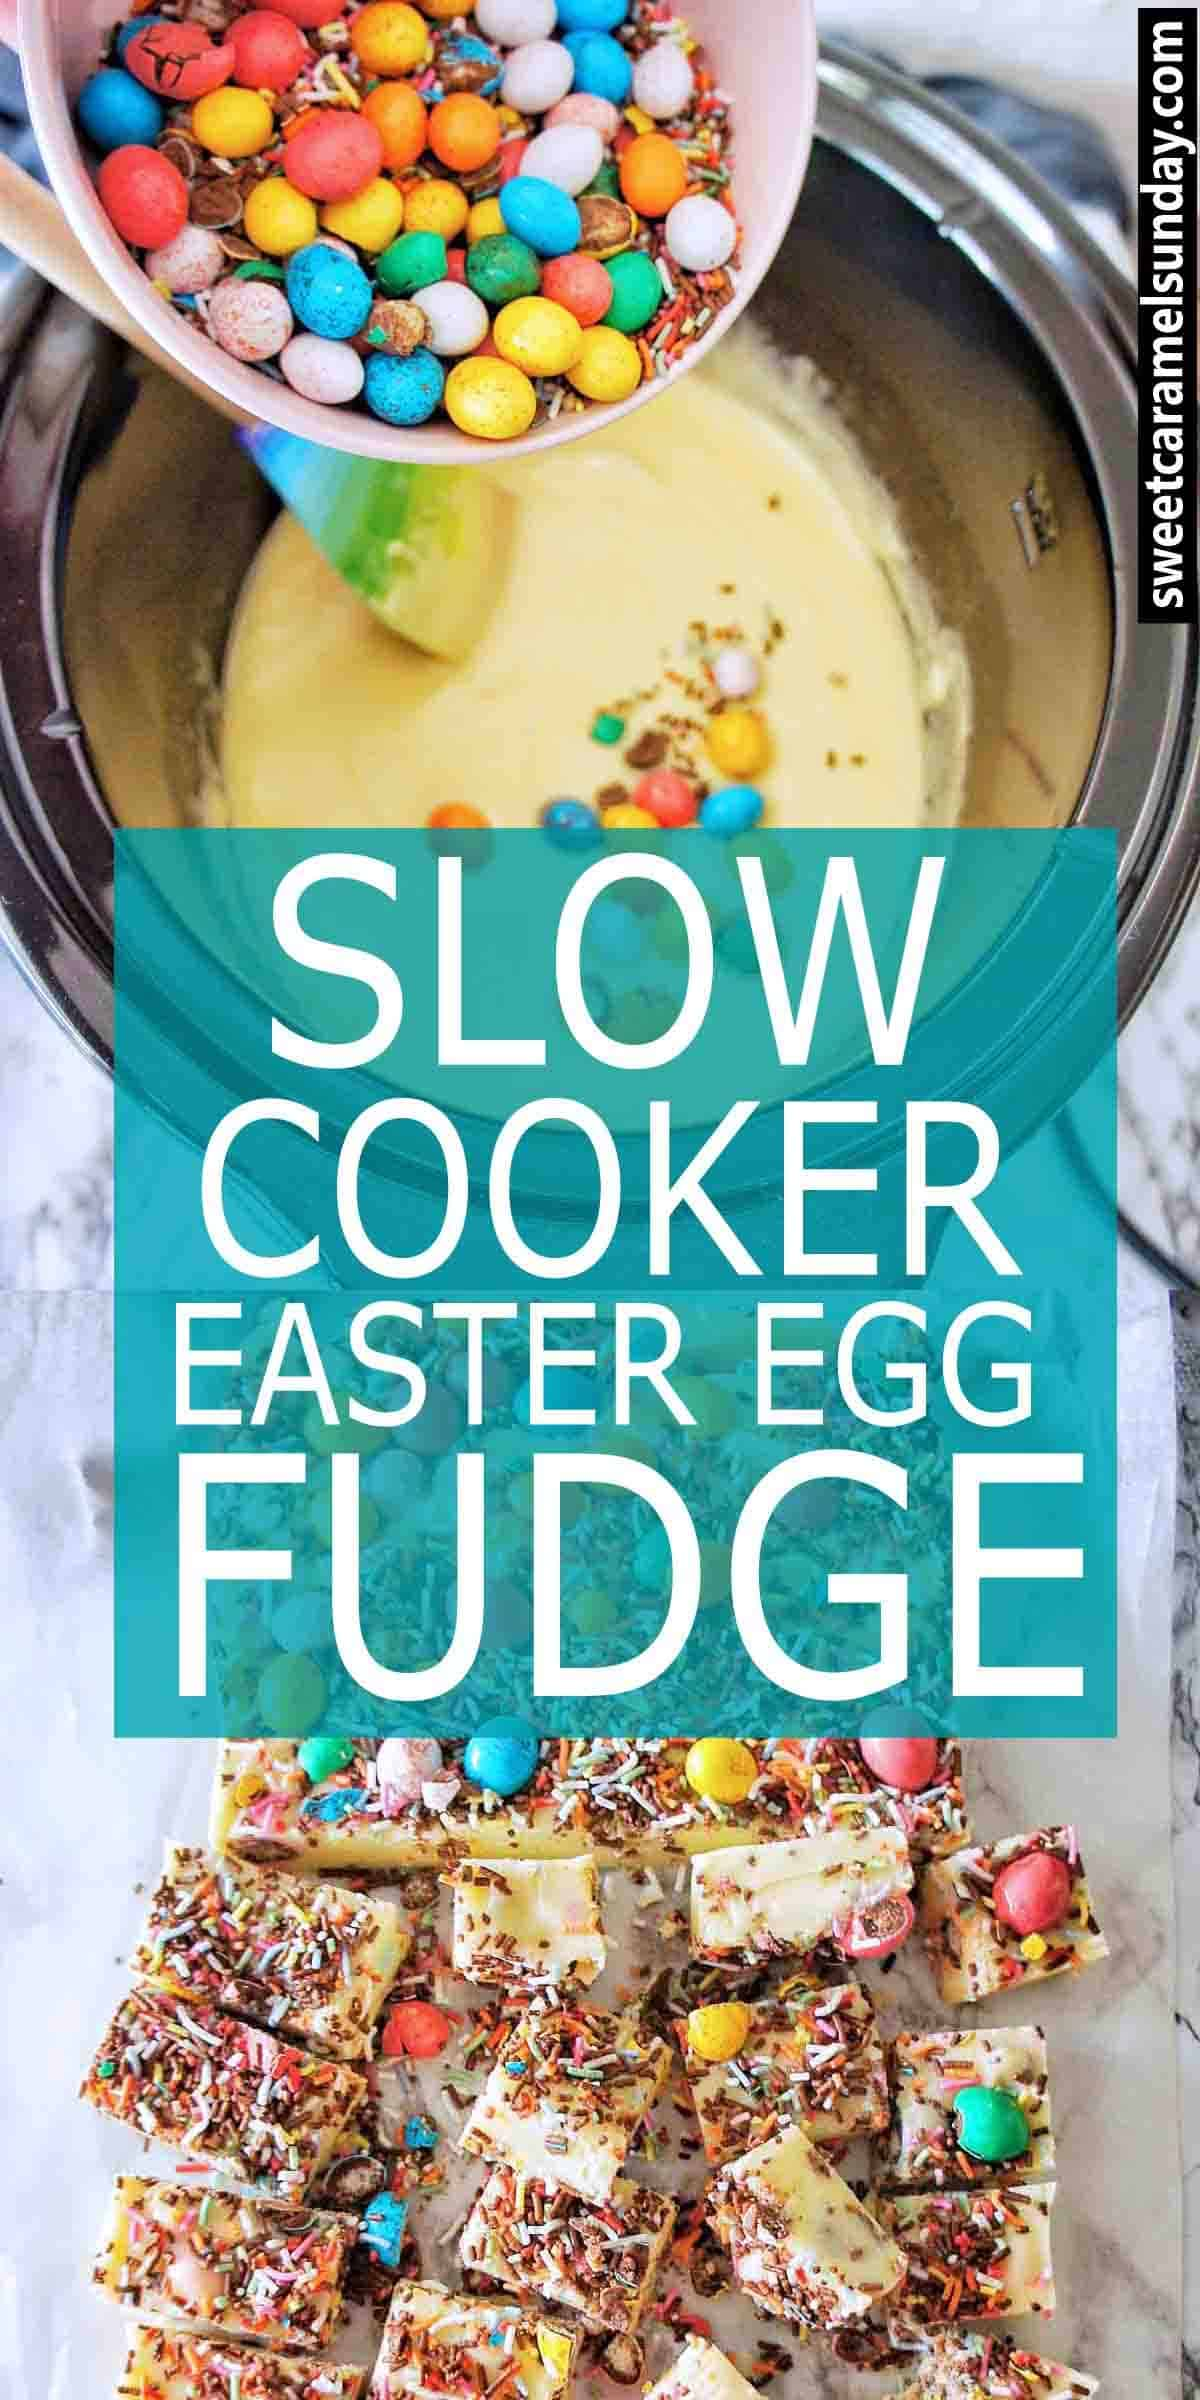 Easter Fudge with text overlay